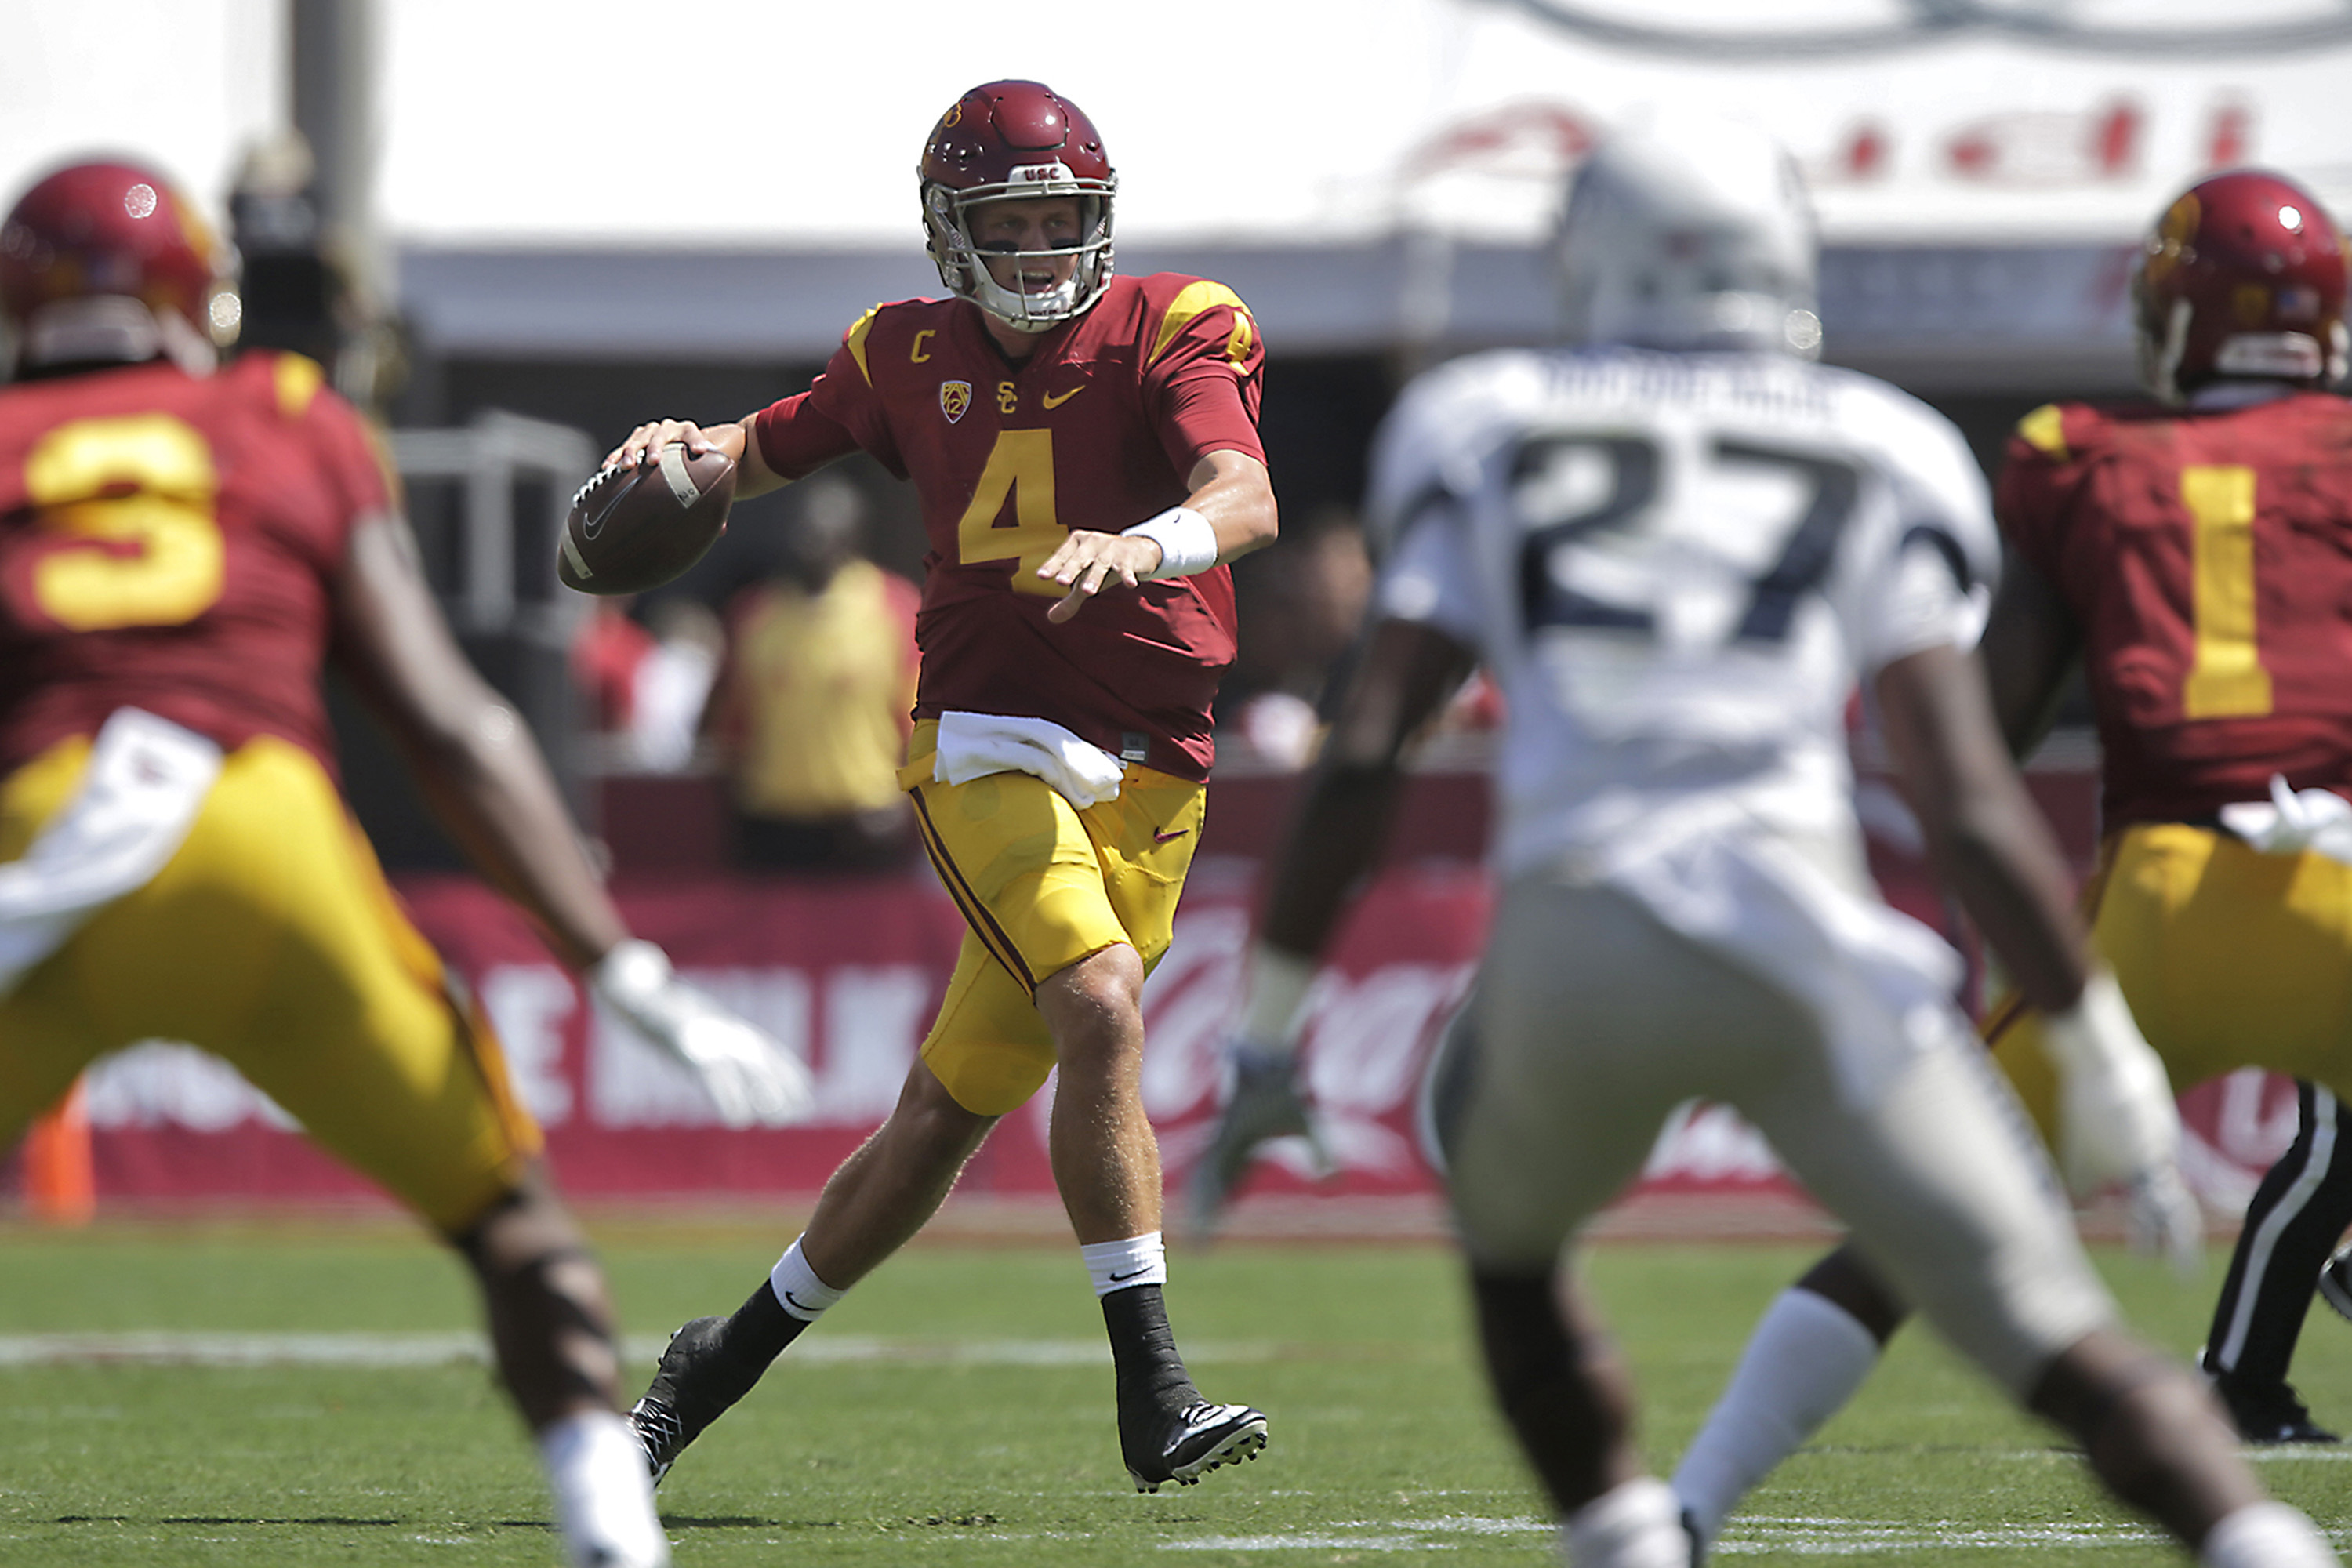 Former USC quarterback Max Browne (4) throws on the run during first-half action against Utah State at the Los Angeles Coliseum on Saturday, Sept. 10, 2016, in Los Angeles. USC won, 45-7. (Robert Gauthier/Los Angeles Times/TNS)